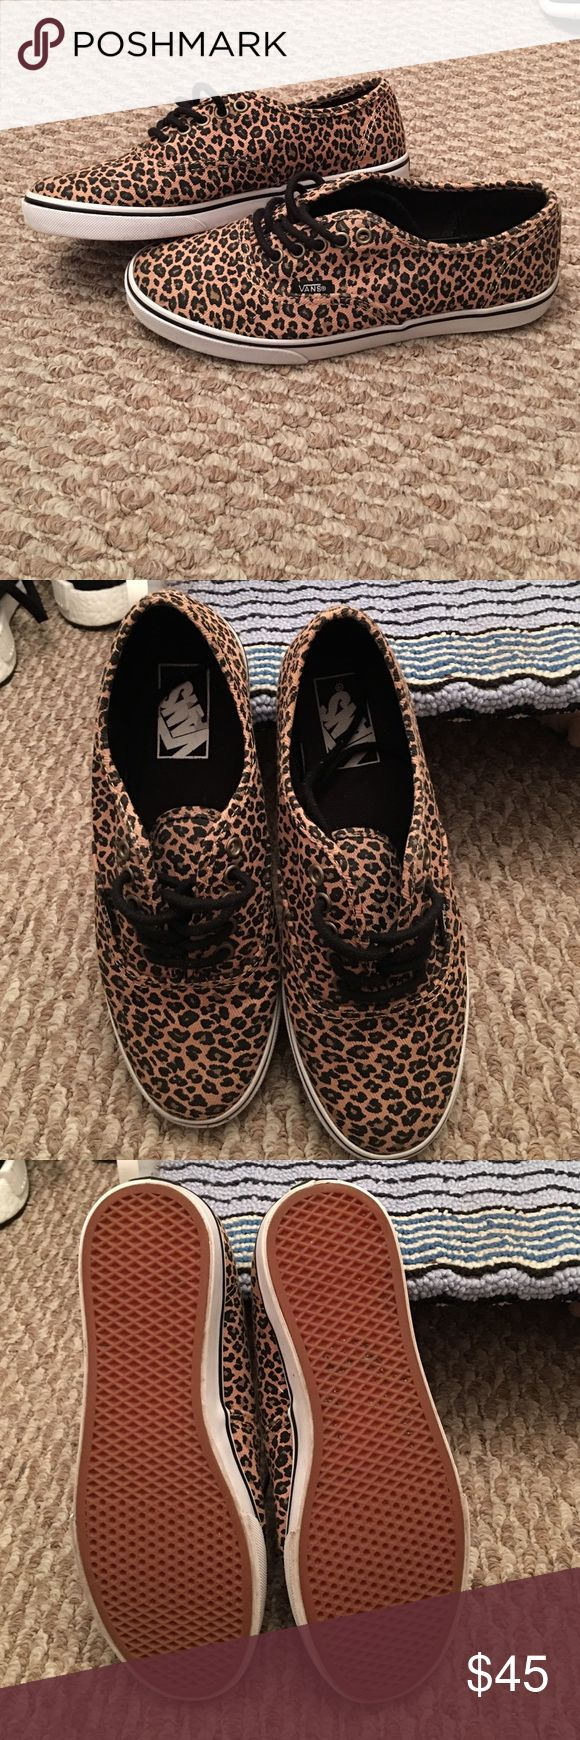 Vans authentic low pro cheetah print These vans are adorable - I just rarely wear them. They've only been worn a handful of time and are in awesome condition with very light wear. No box. Vans Shoes Sneakers